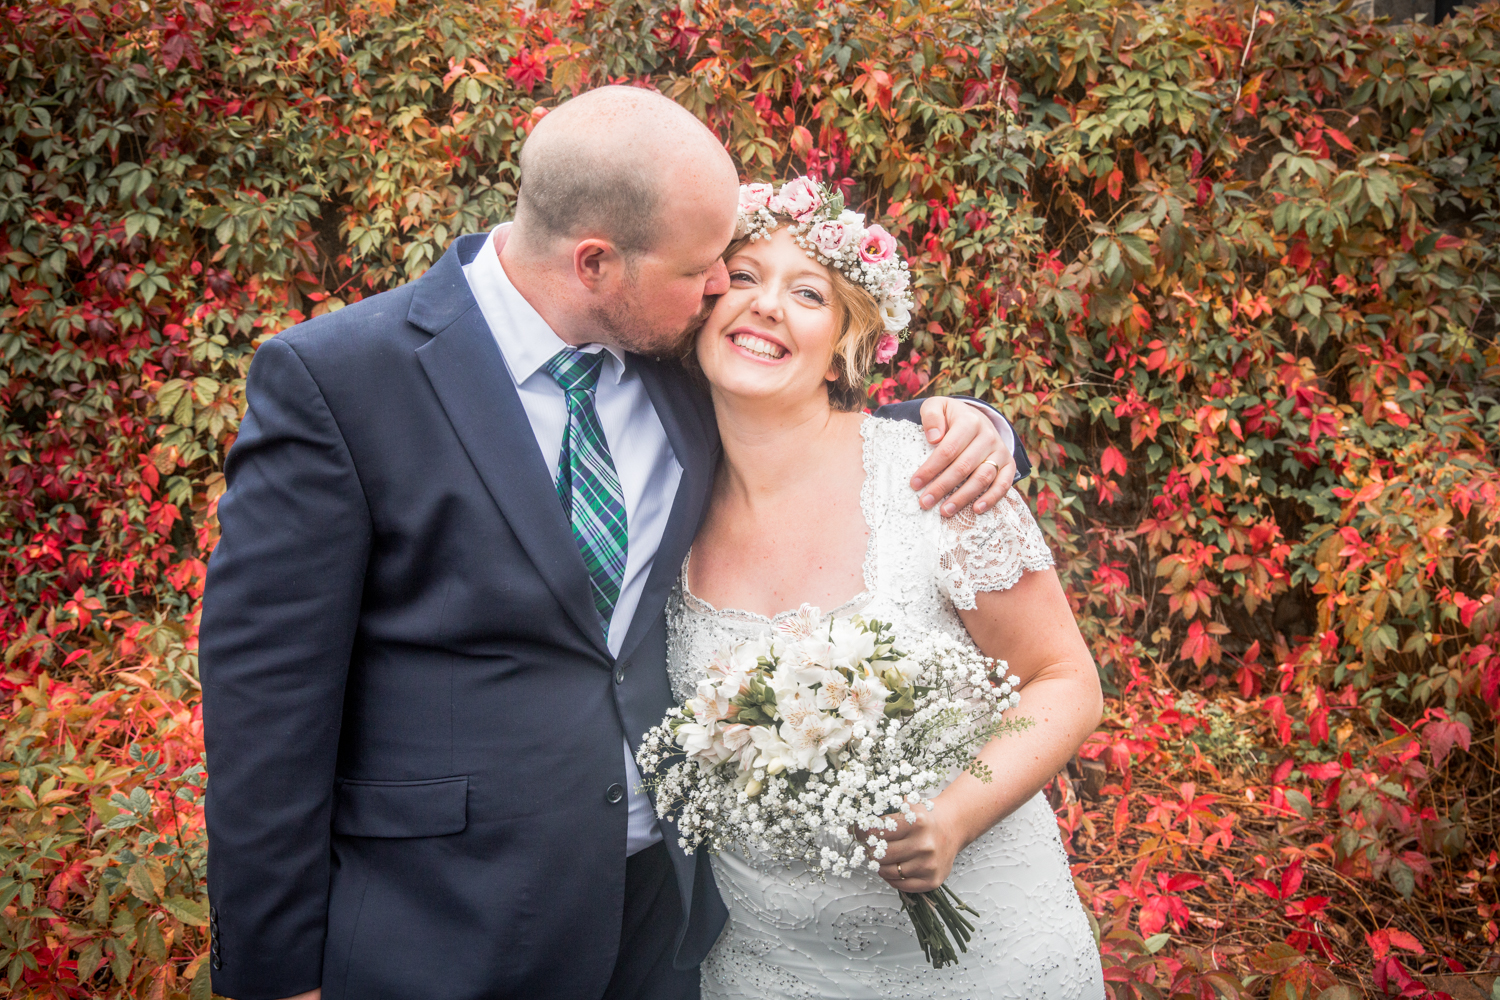 Autumn wedding photography in swansea and the gower